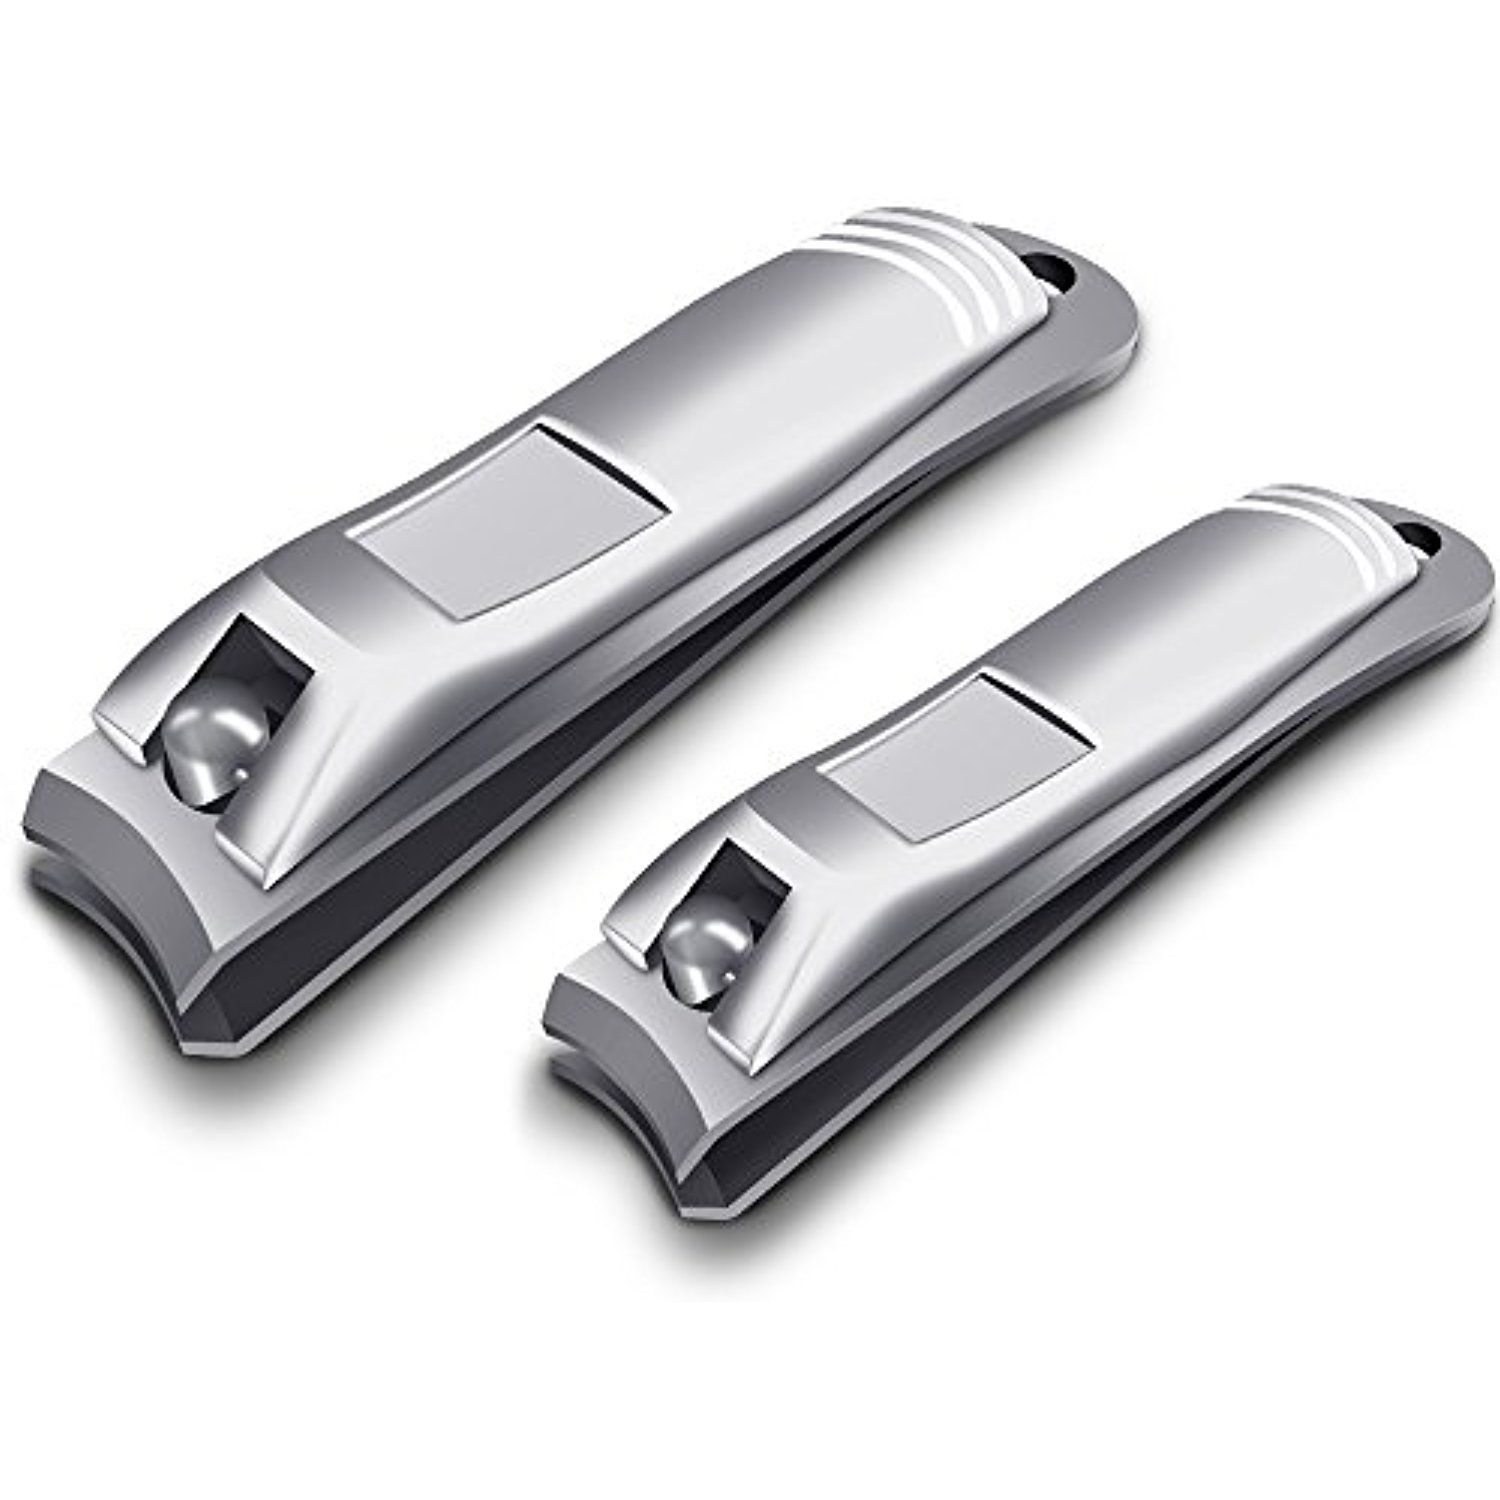 Chimocee Nail Clippers, 2PCS Professional Sharpest Stainless Steel ...